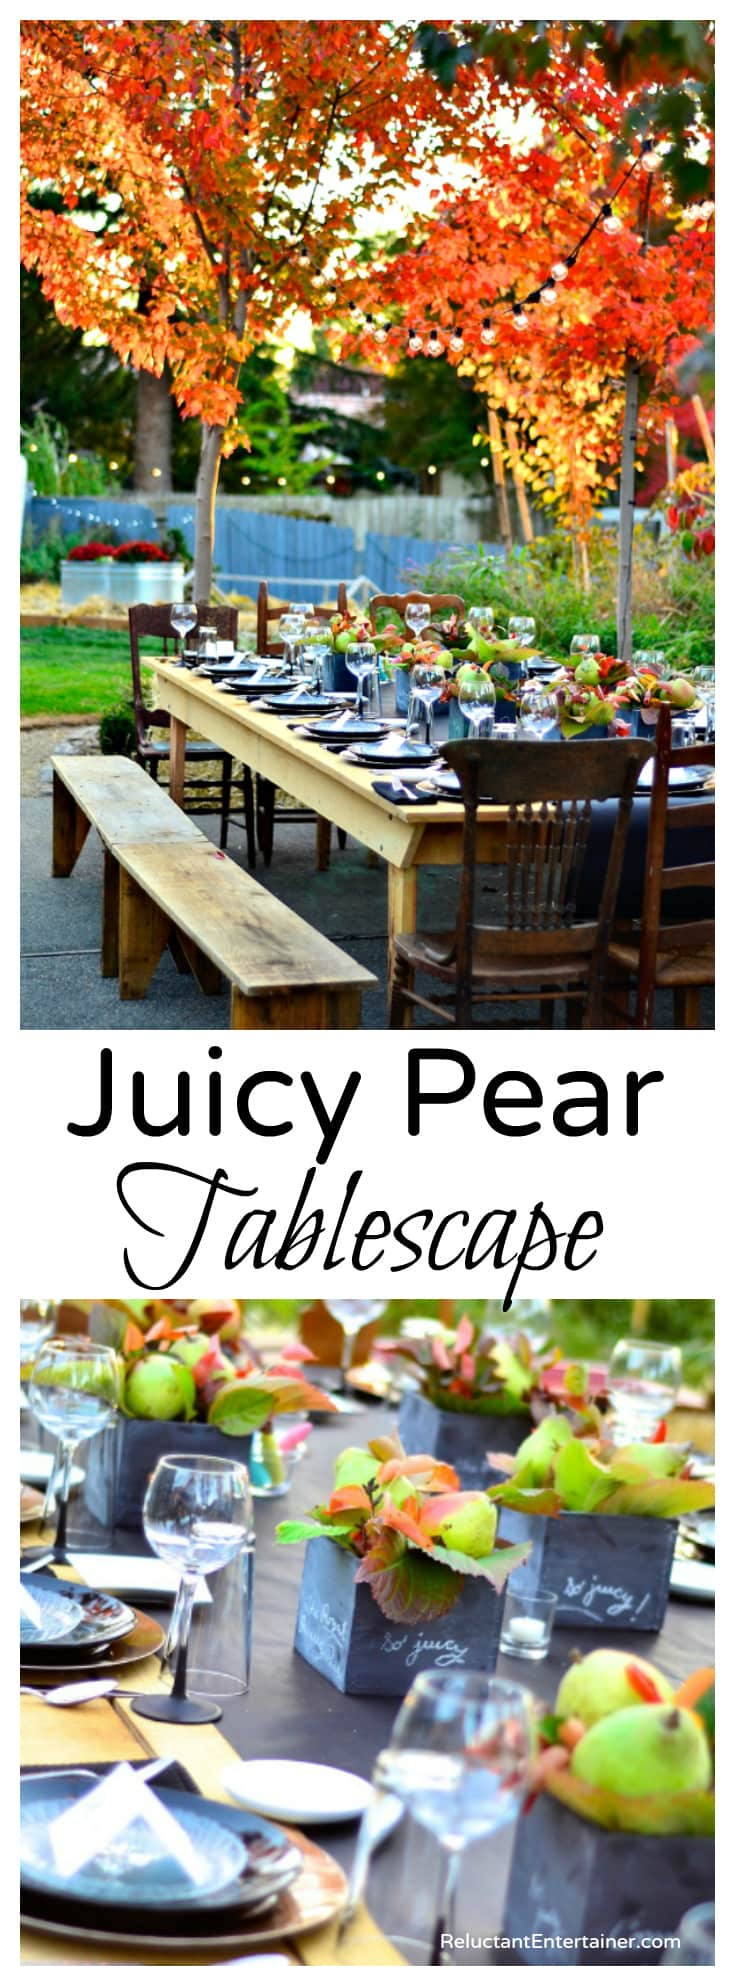 Juicy Pear Tablescape